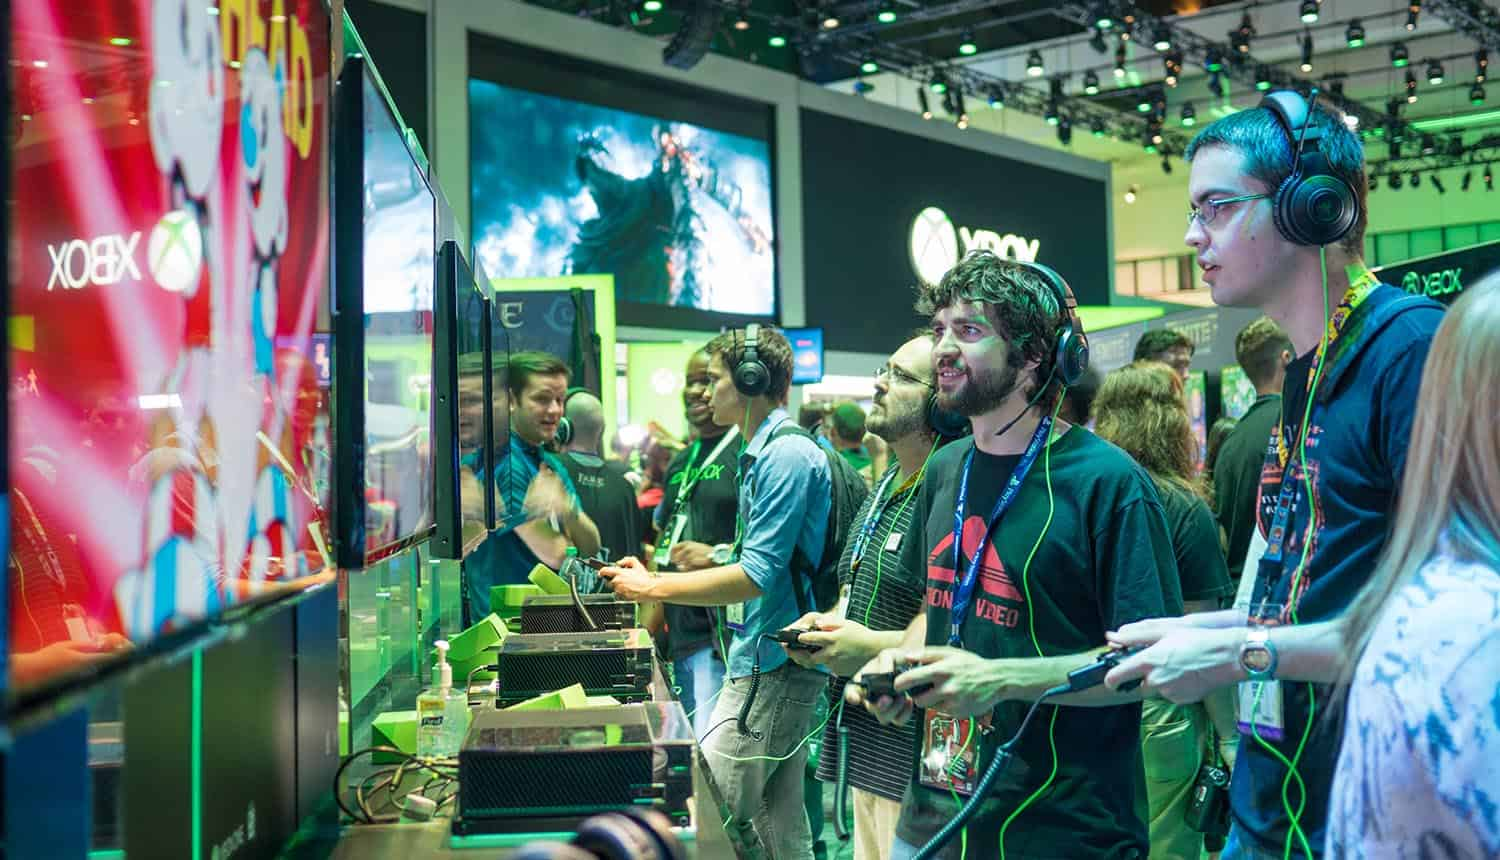 Gamers playing demo games showing need to make cybersecurity a priority in gaming